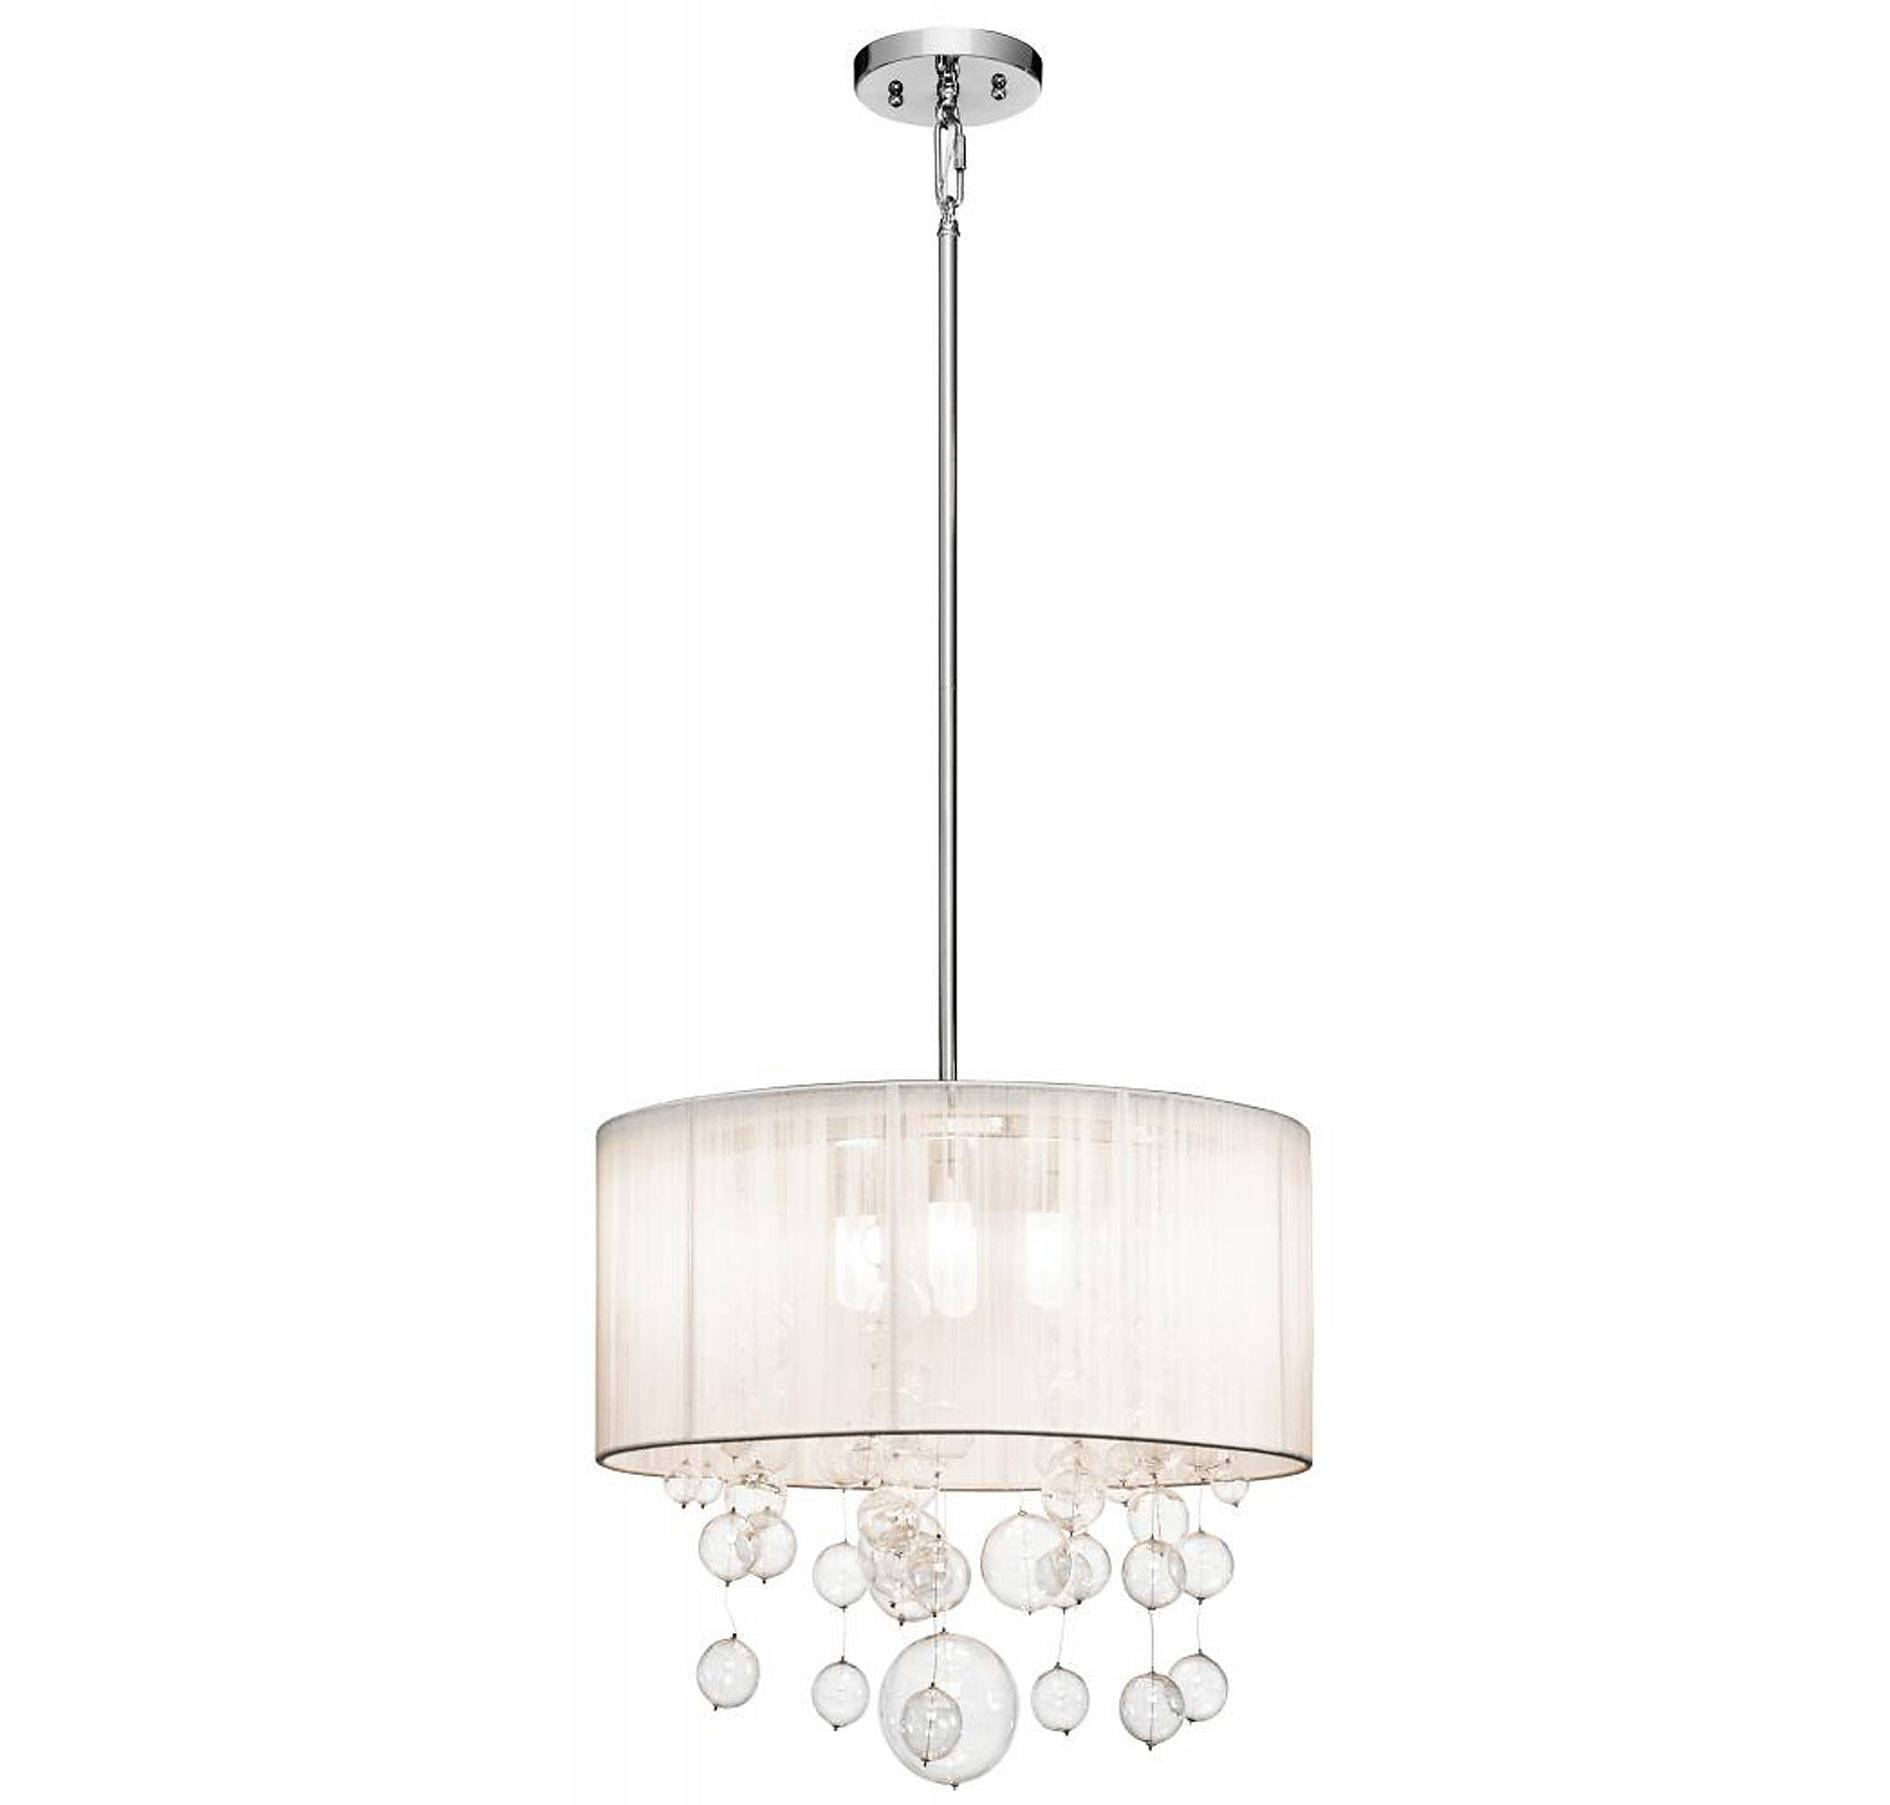 Accessories : Drum Pendant Lighting Oversized Drum Pendant Light with regard to Red Drum Pendants (Image 6 of 15)